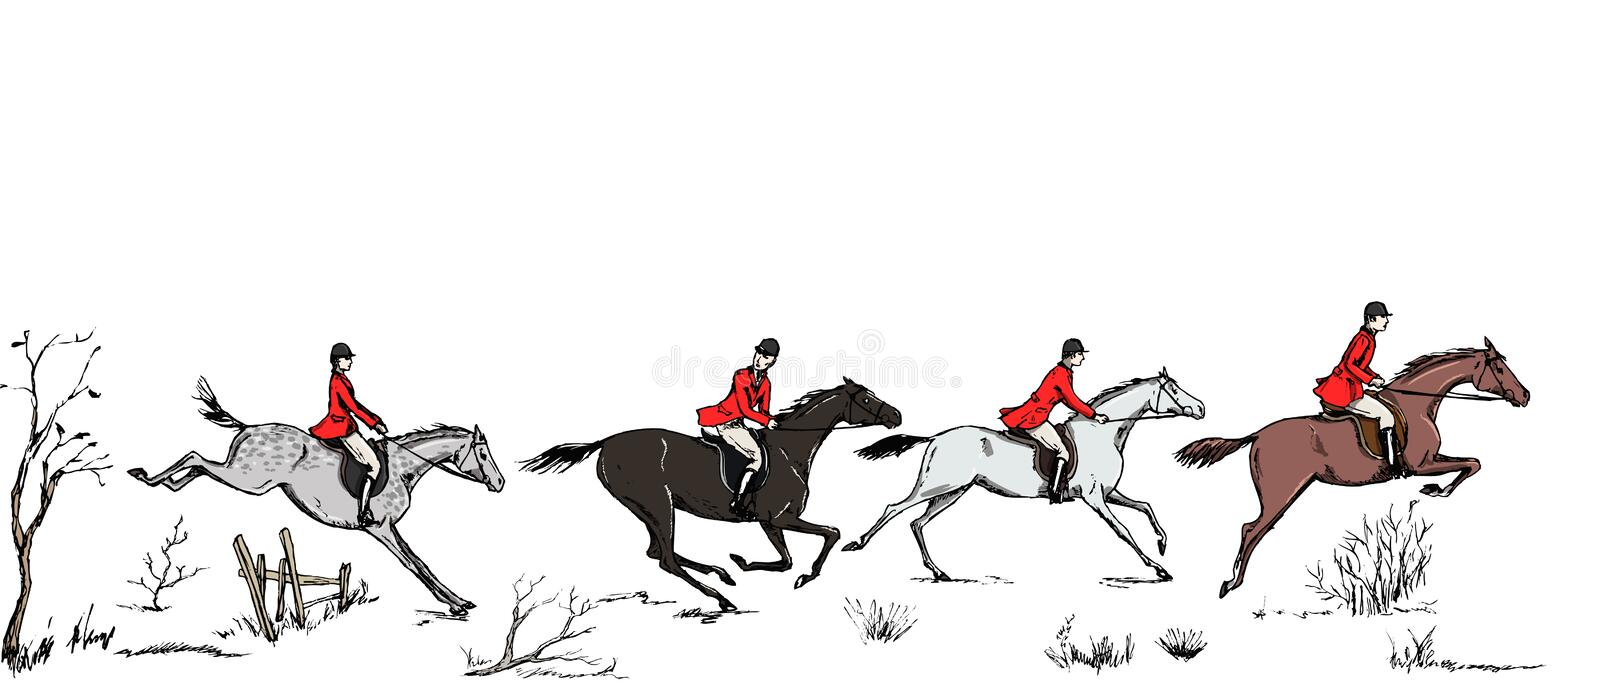 Equestrian sport fox hunting with horse riders english style in red jacket on landscape. England steeplechase tradition frame, header banner or border. Hand stock illustration